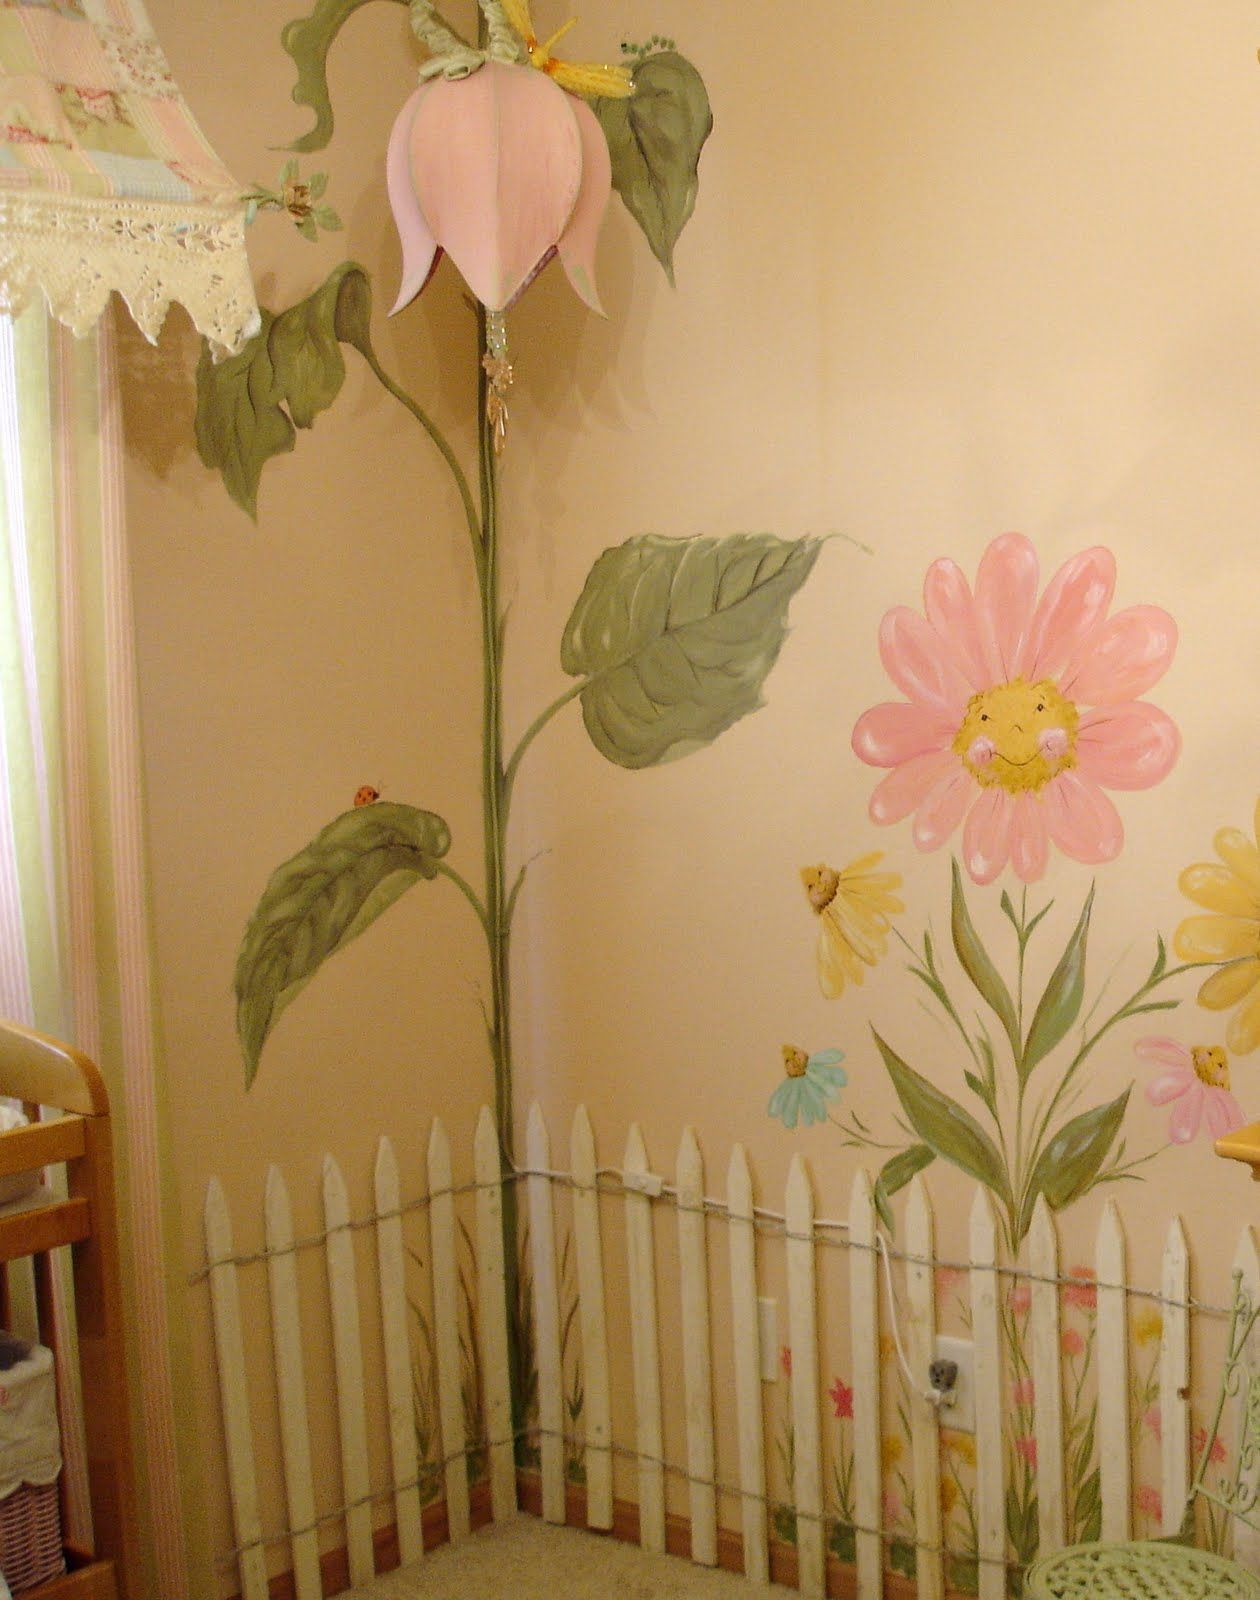 Meet Me In My Bedroom Baby: Baby Girl Nursery, Love Flower Garden Decor! Cute Nursery